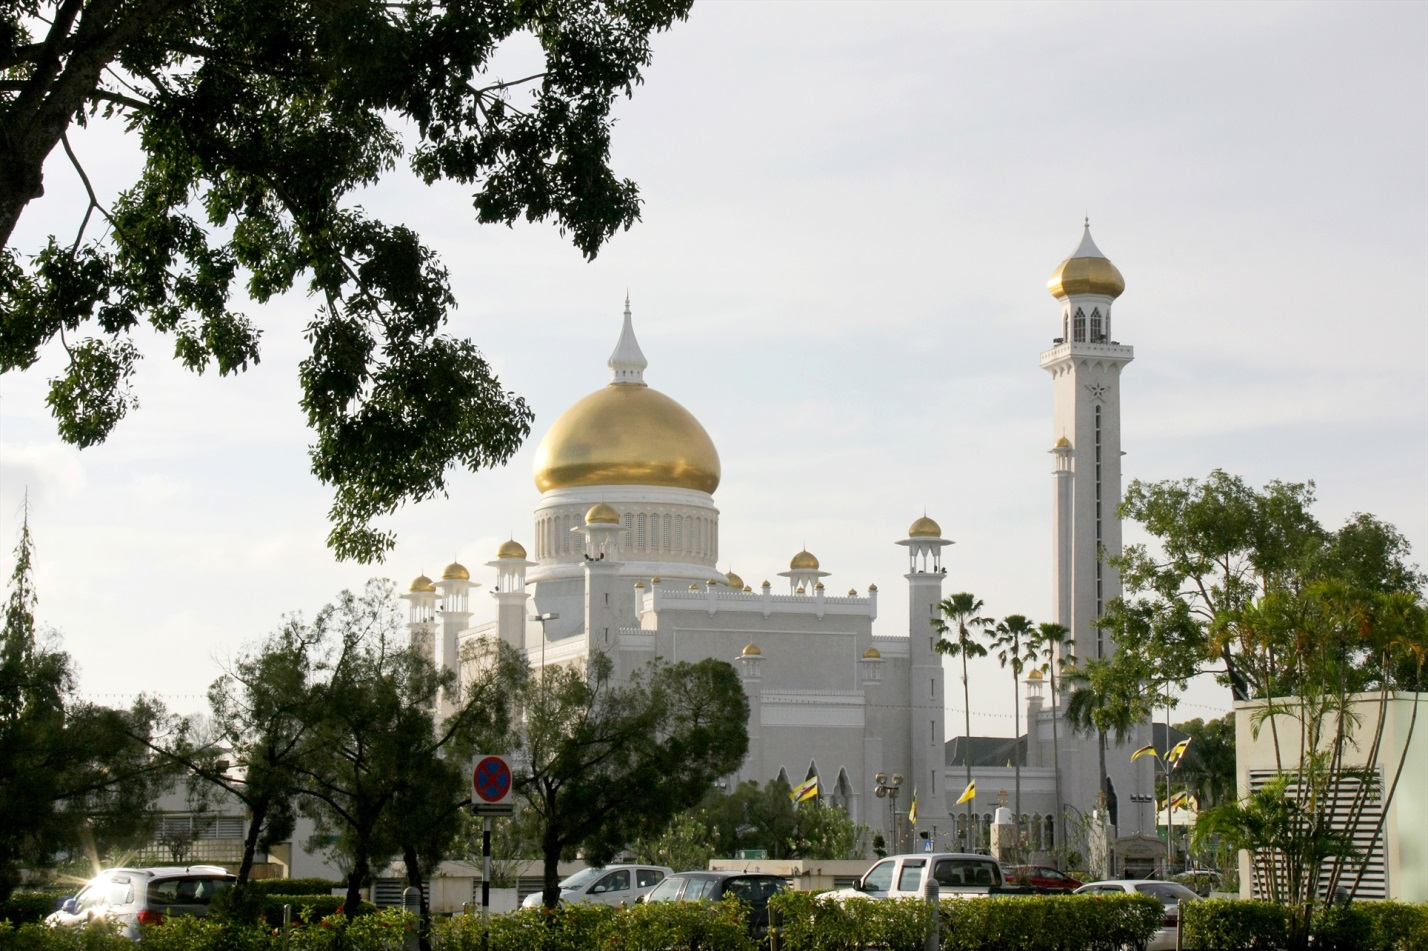 Lessons from the Persecuted Church in Brunei